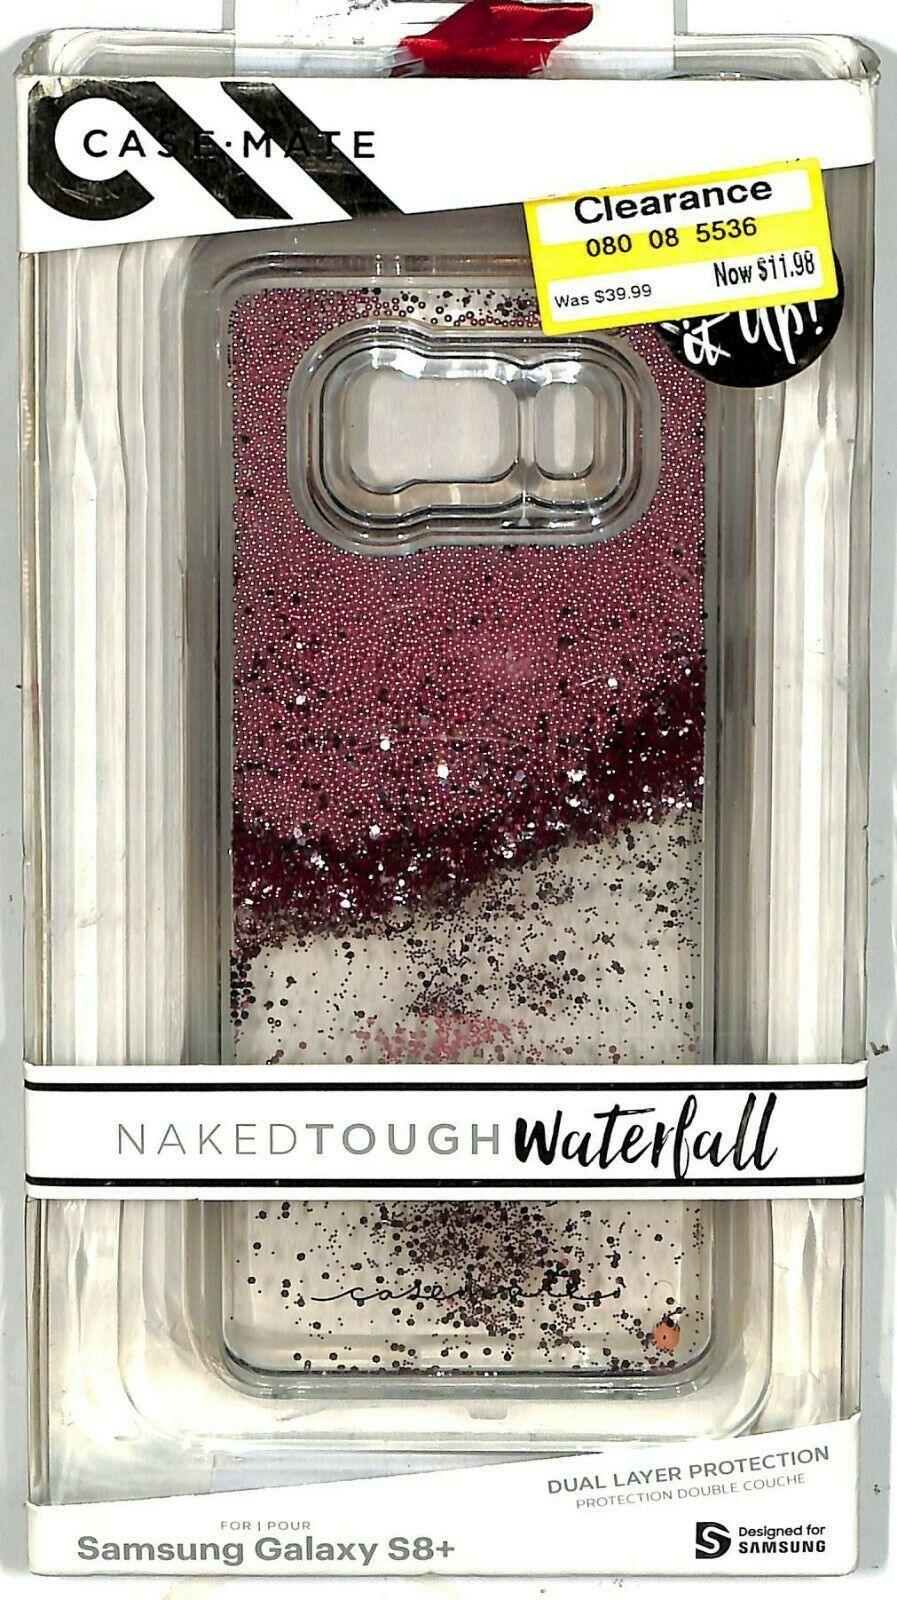 Case Mate Naked Tough Waterfall Case for Samsung Galaxy S8+ New-open box S8PLUS